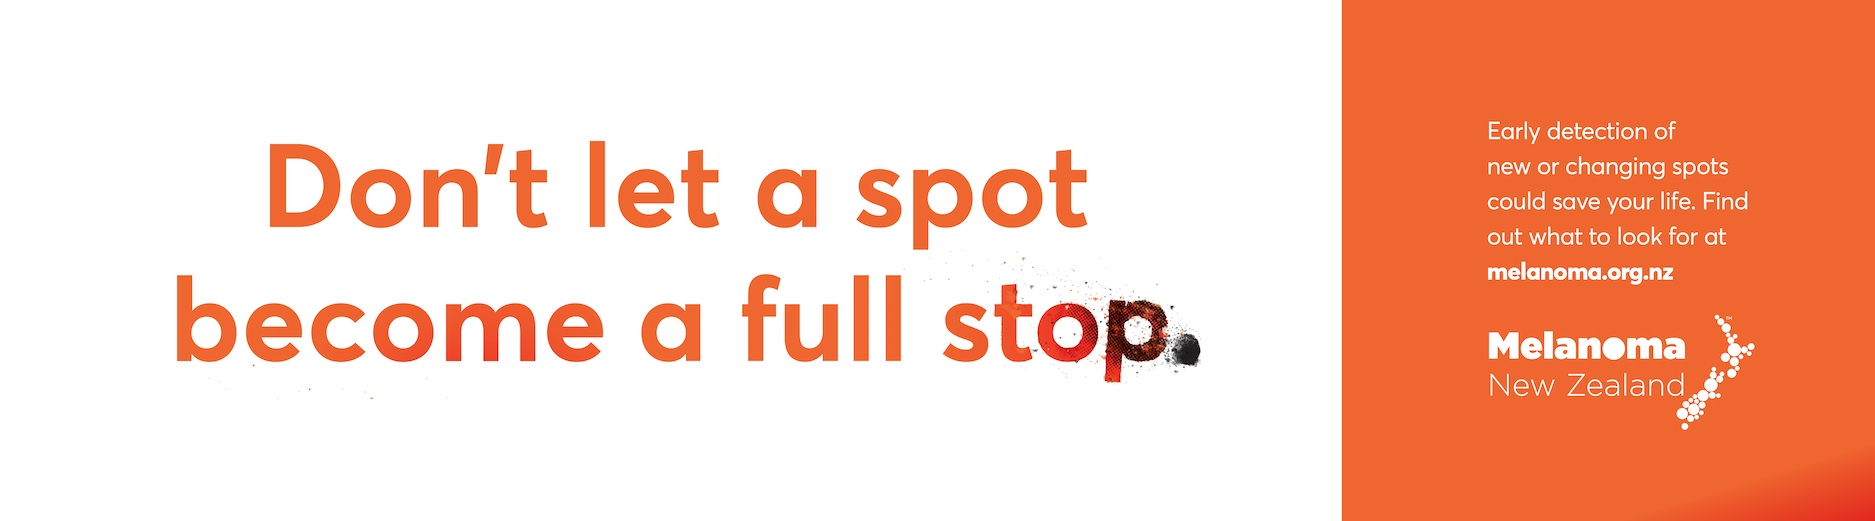 Don't let a spot become a full stop: Melanoma NZ and TBWA NZ launch awareness campaign hidden in plain sight